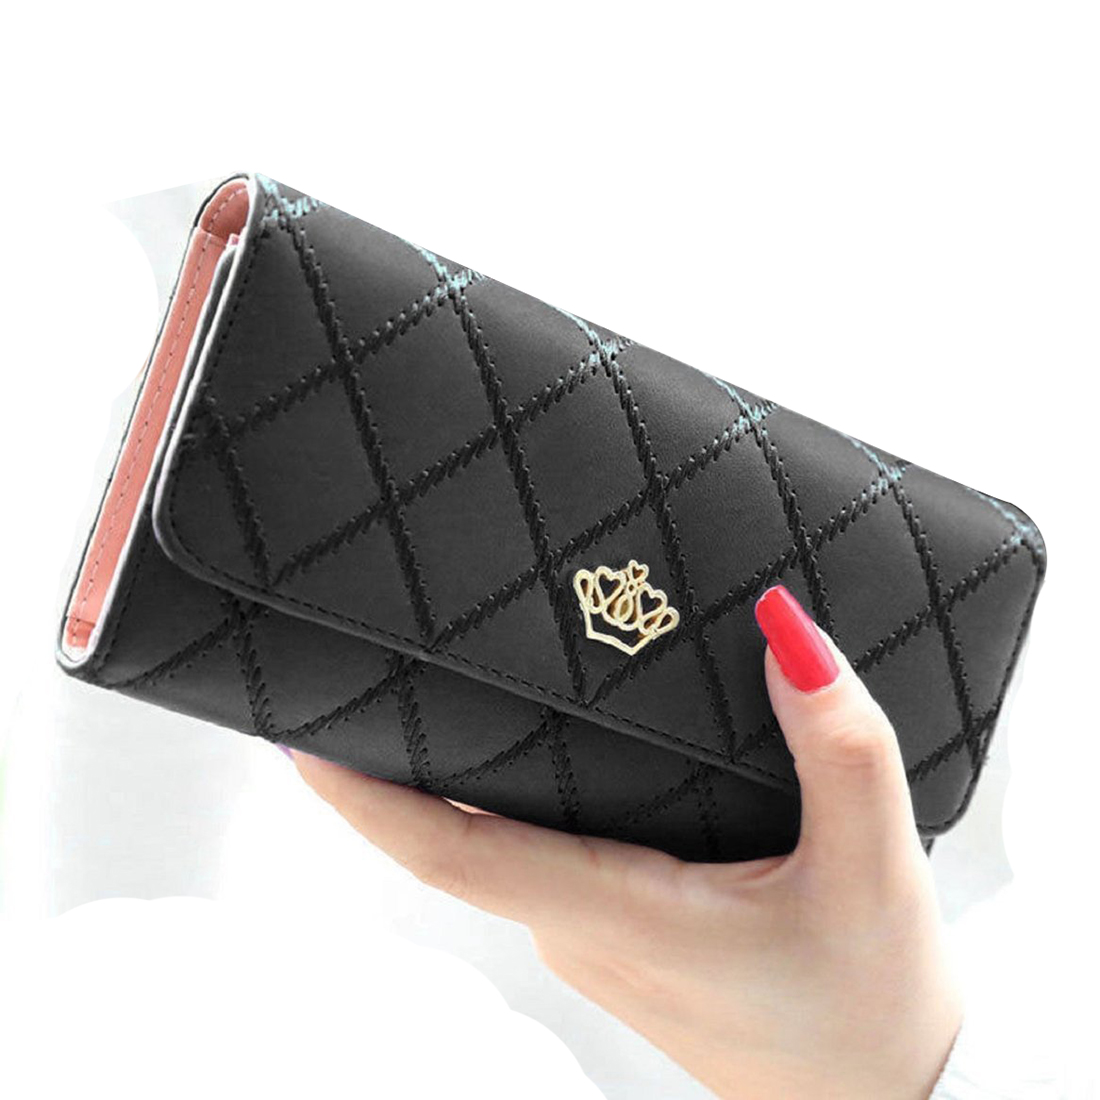 Fashion and New Women Lady Long Clutch Purse Bags Leather Bag Card Holder Wallet Black